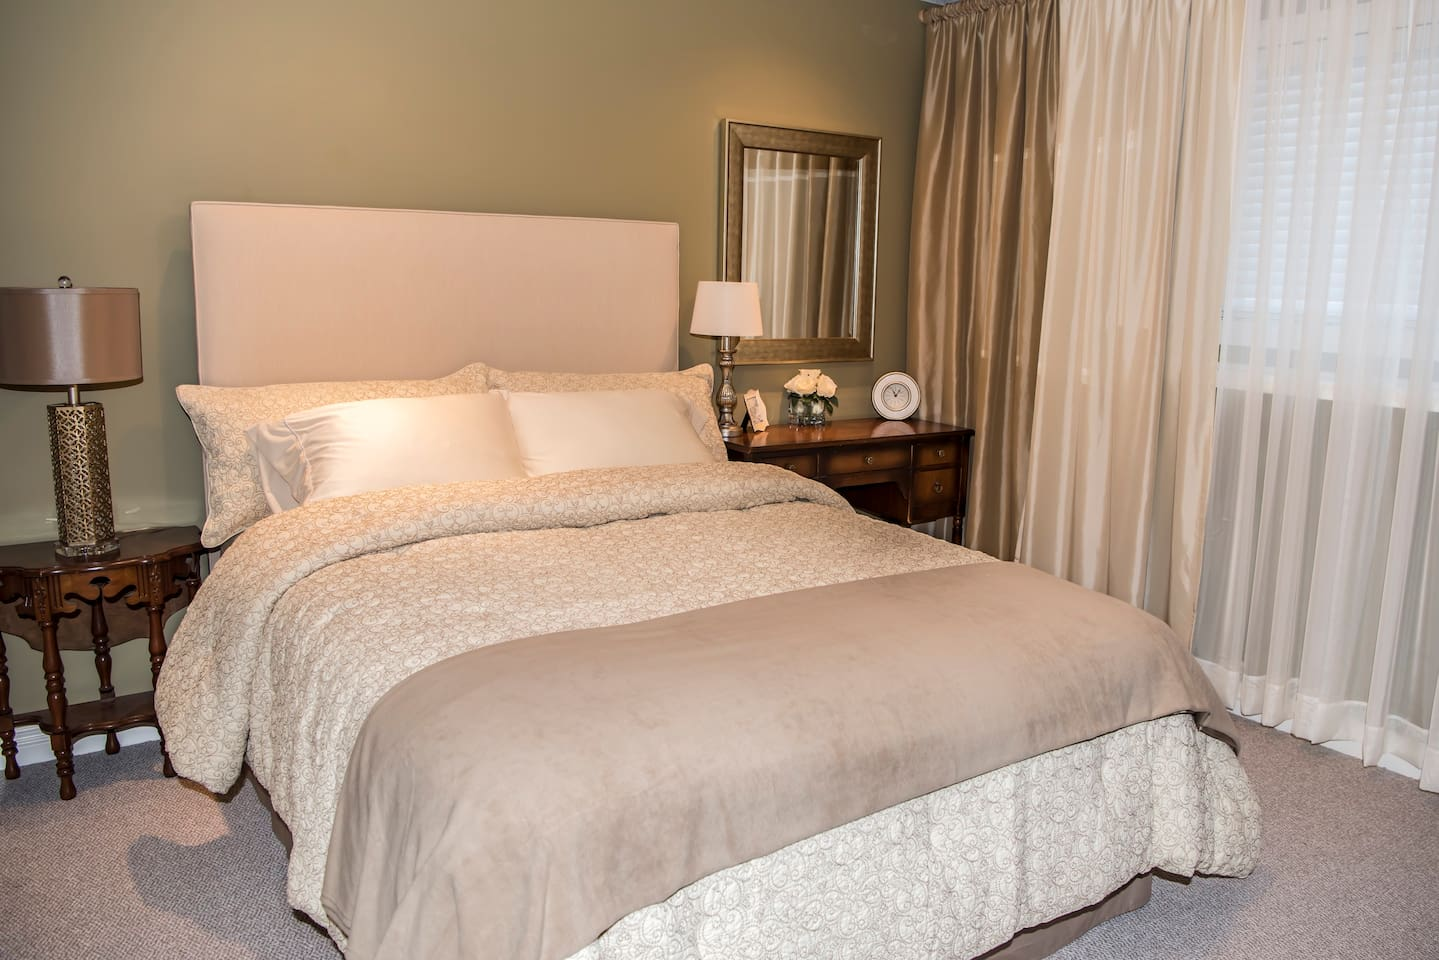 This is a brand new queen bed and very comfortable.  We offer various levels of comfort in pillows too.